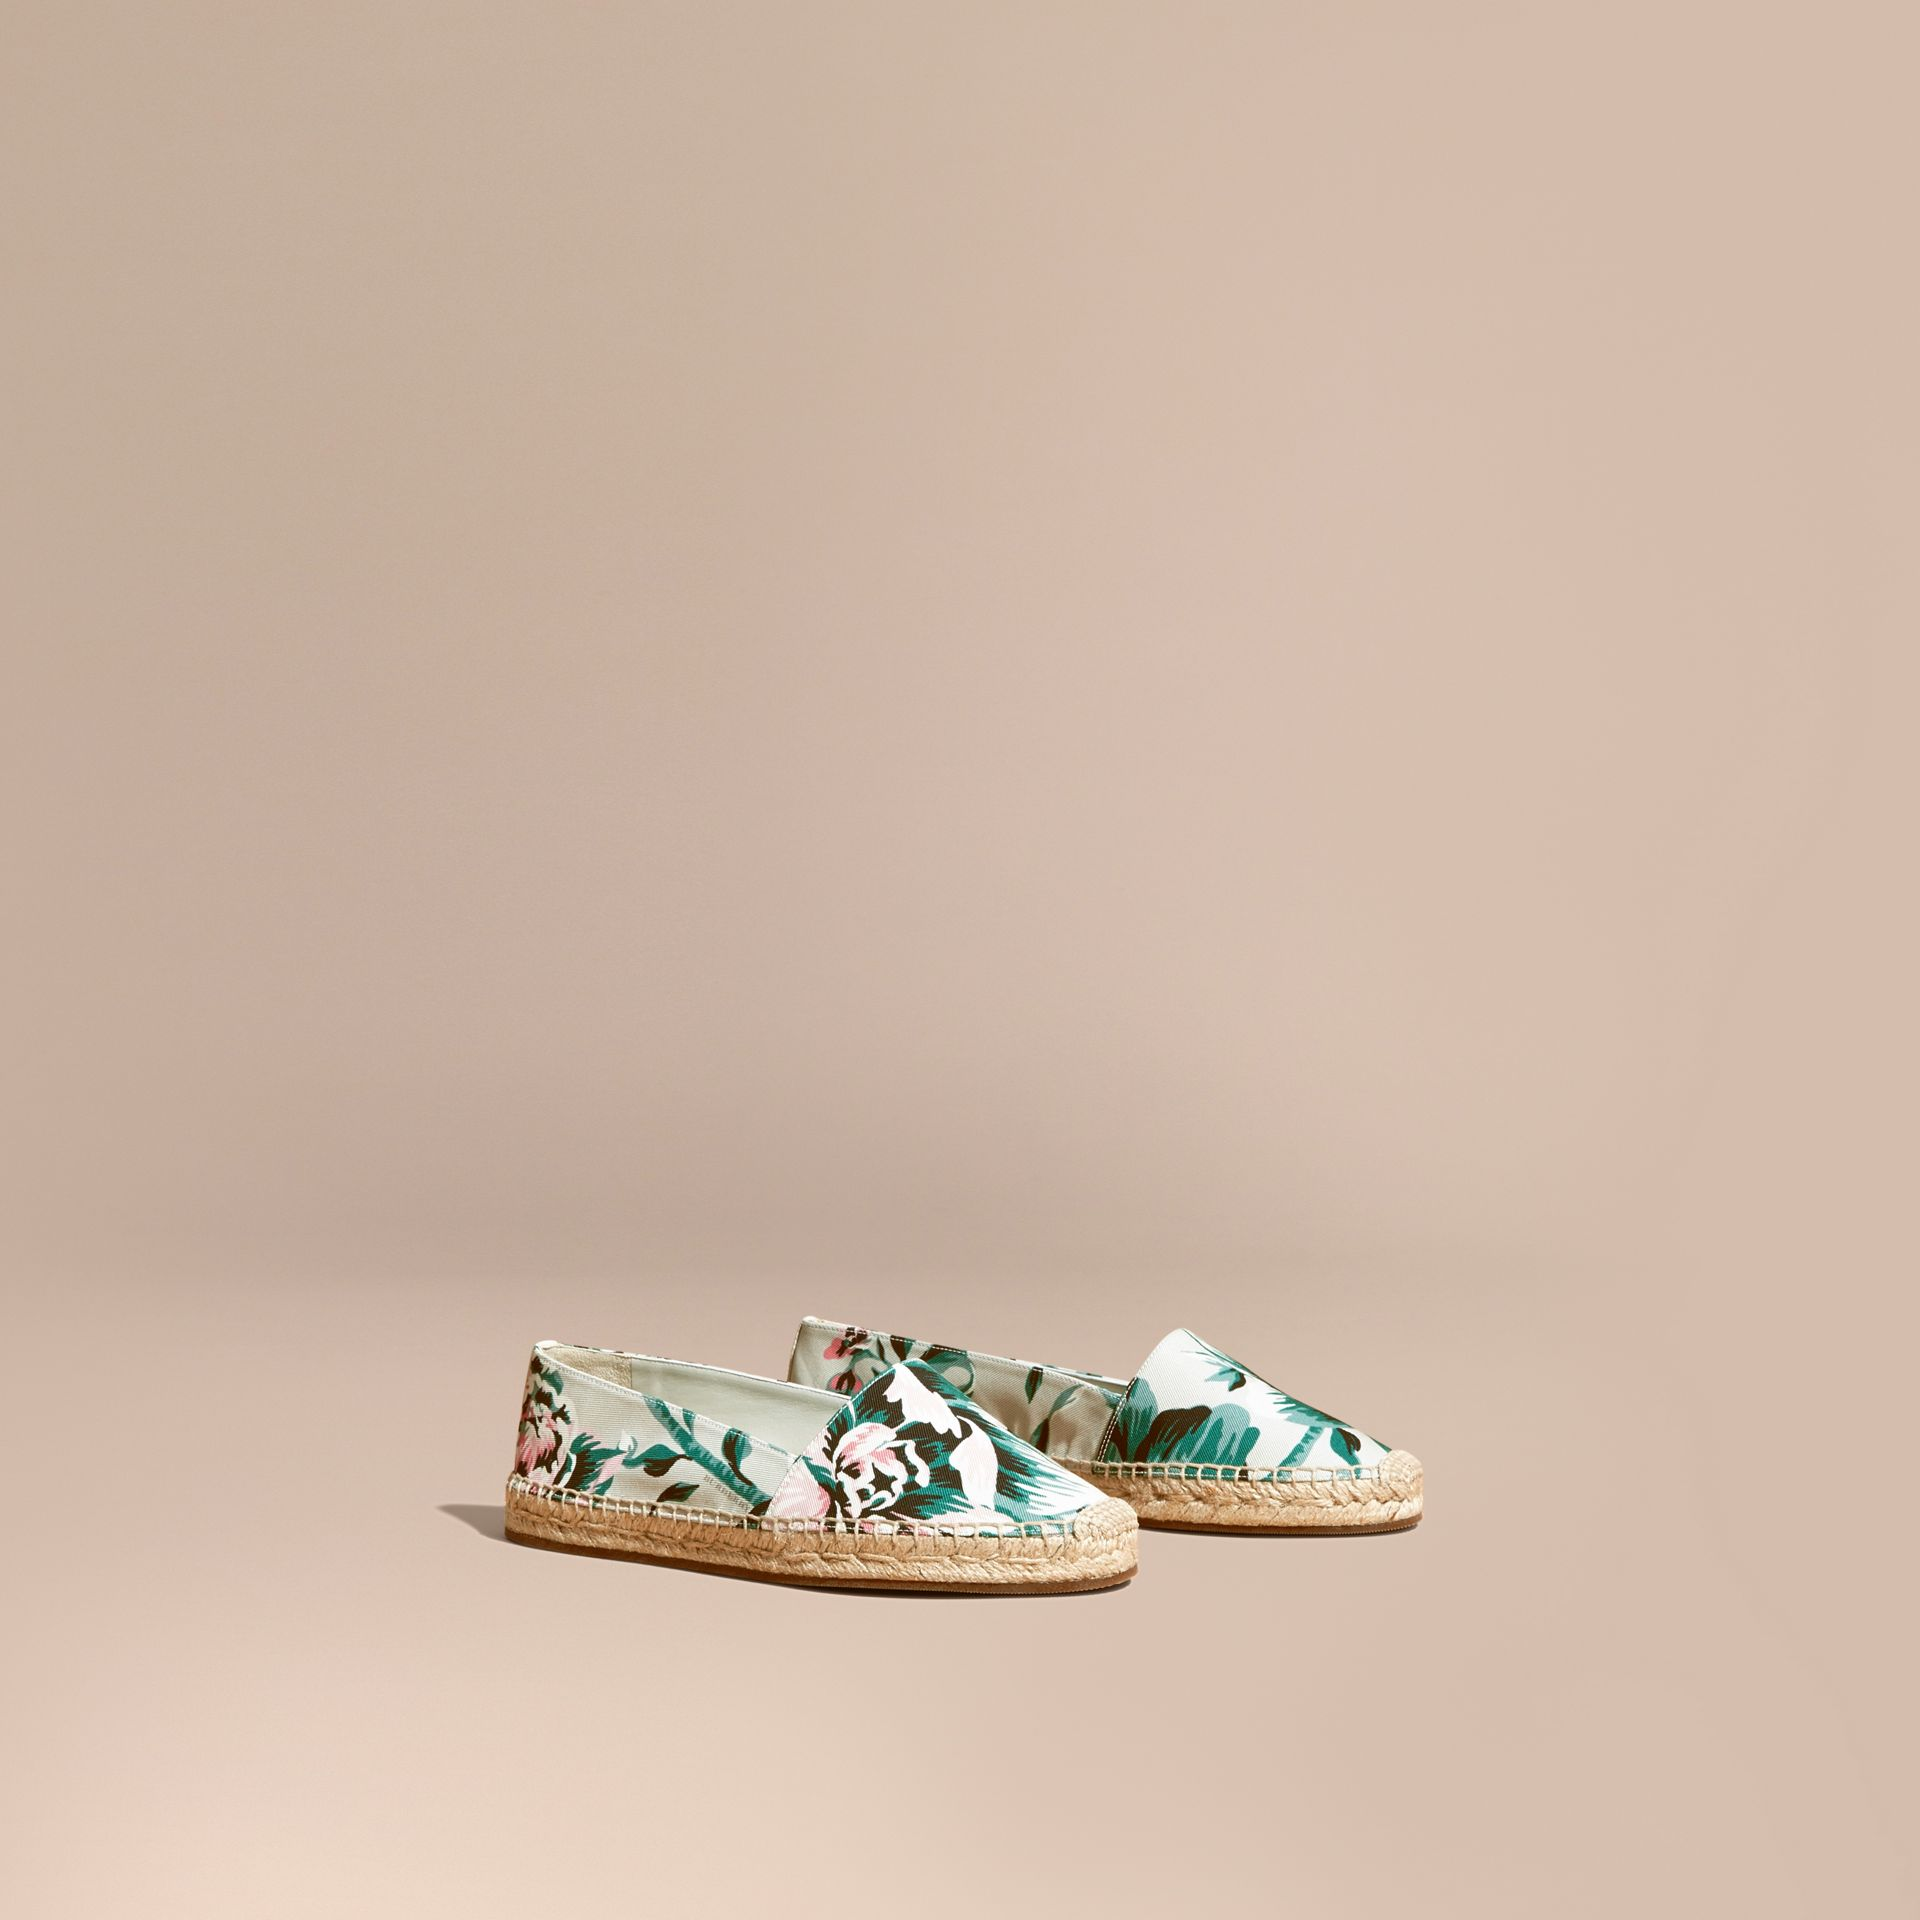 Peony Rose Print Canvas Espadrilles Emerald Green - gallery image 1